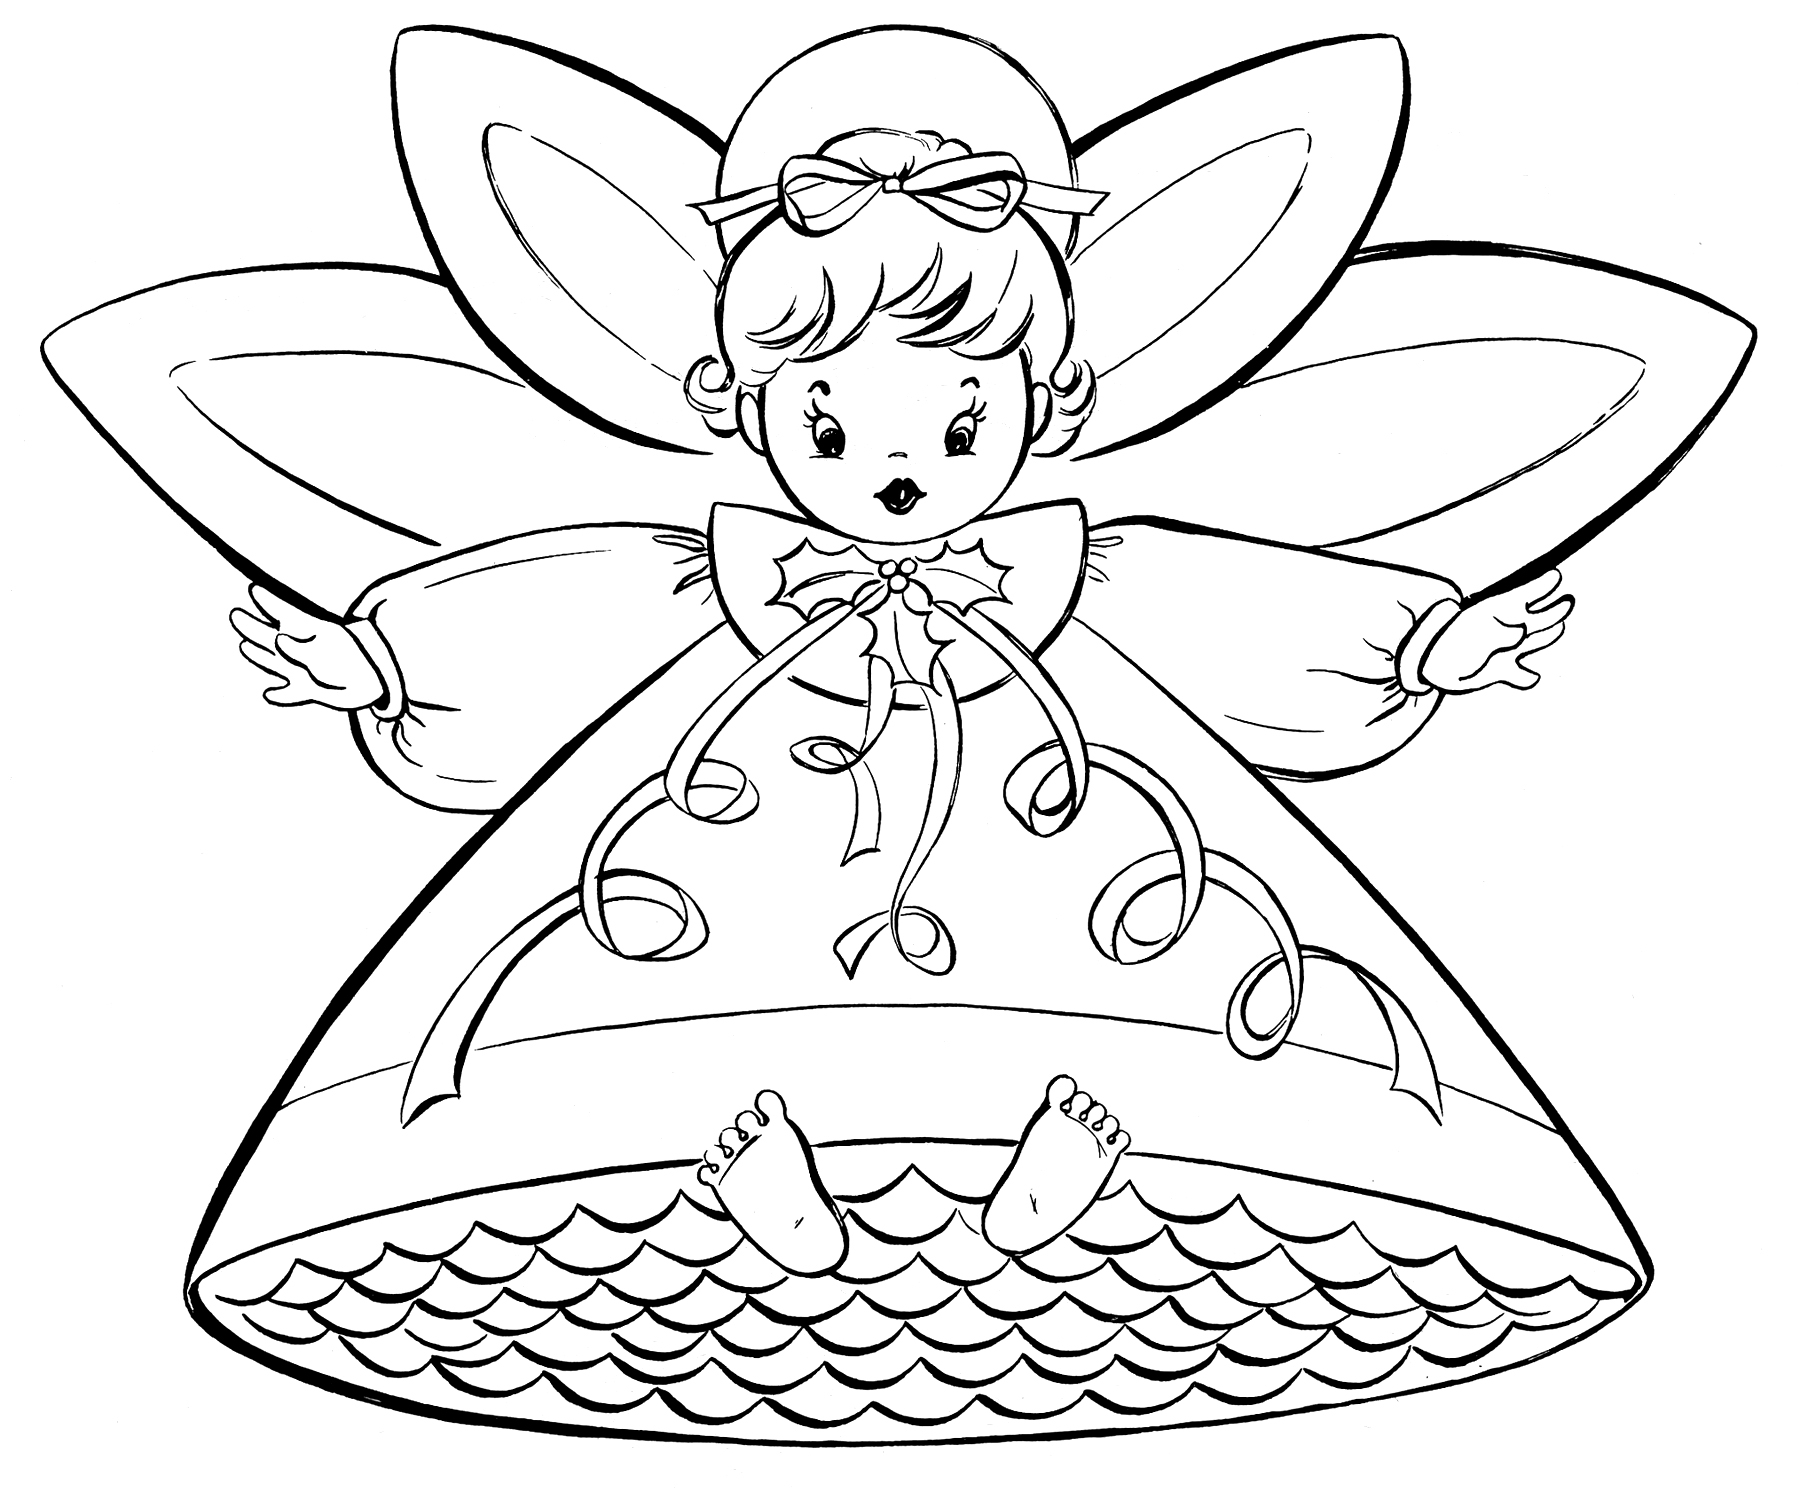 Free Angel Coloring Pages For Adults at GetDrawings.com | Free for ...